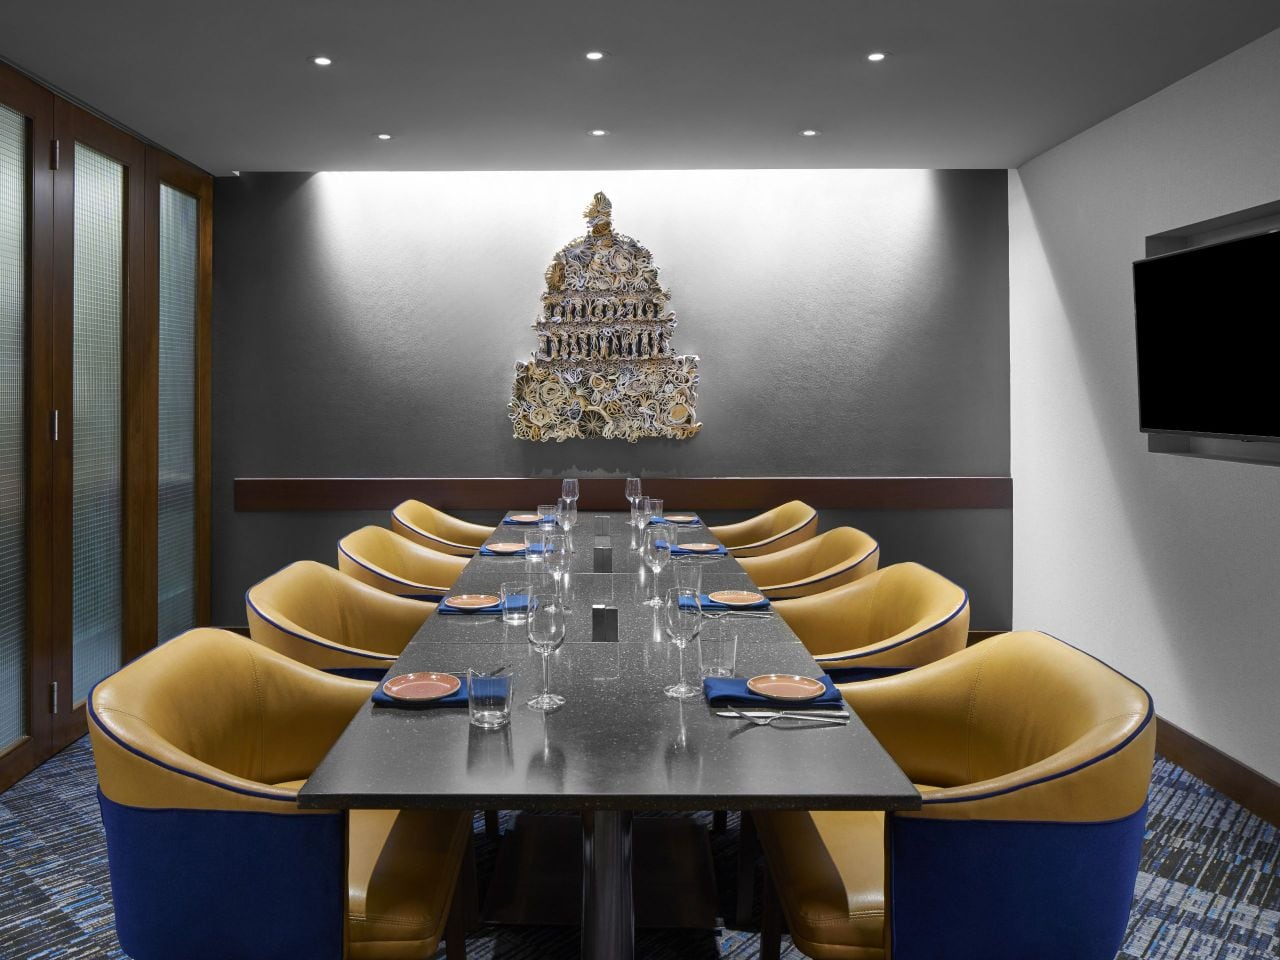 Article One Restaurant at Hyatt Regency Washsington on Capital Hill